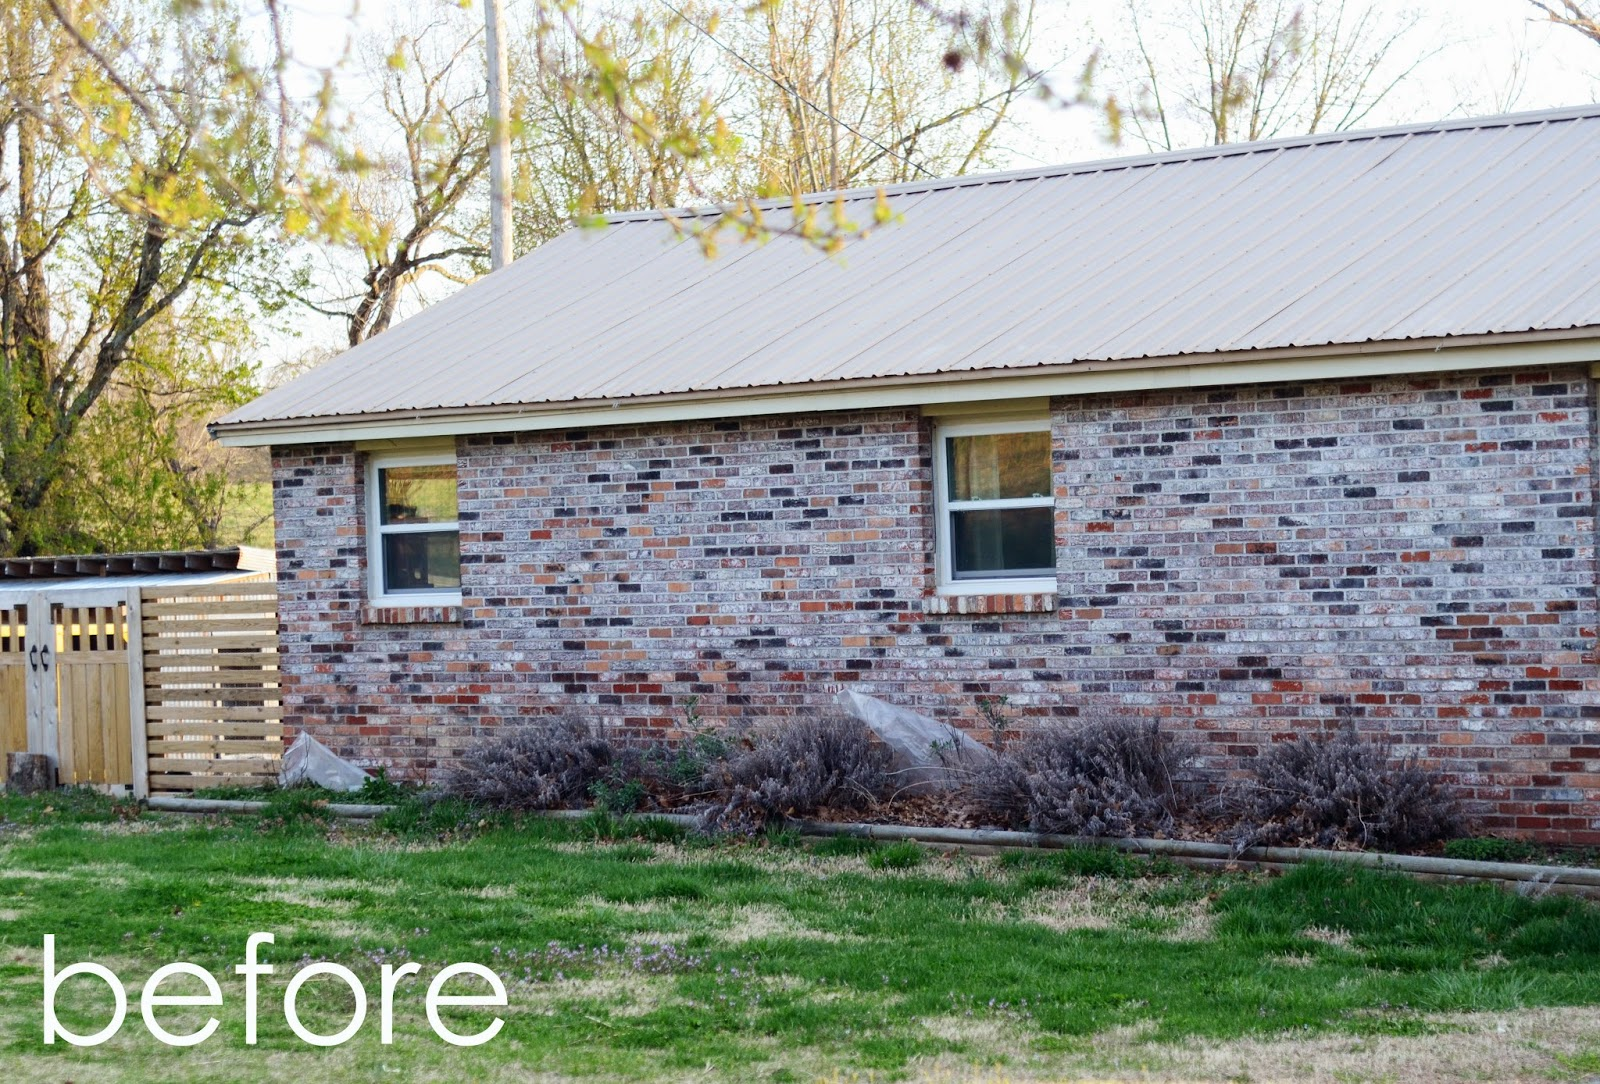 natalie creates: exterior house renovation progress: painted brick